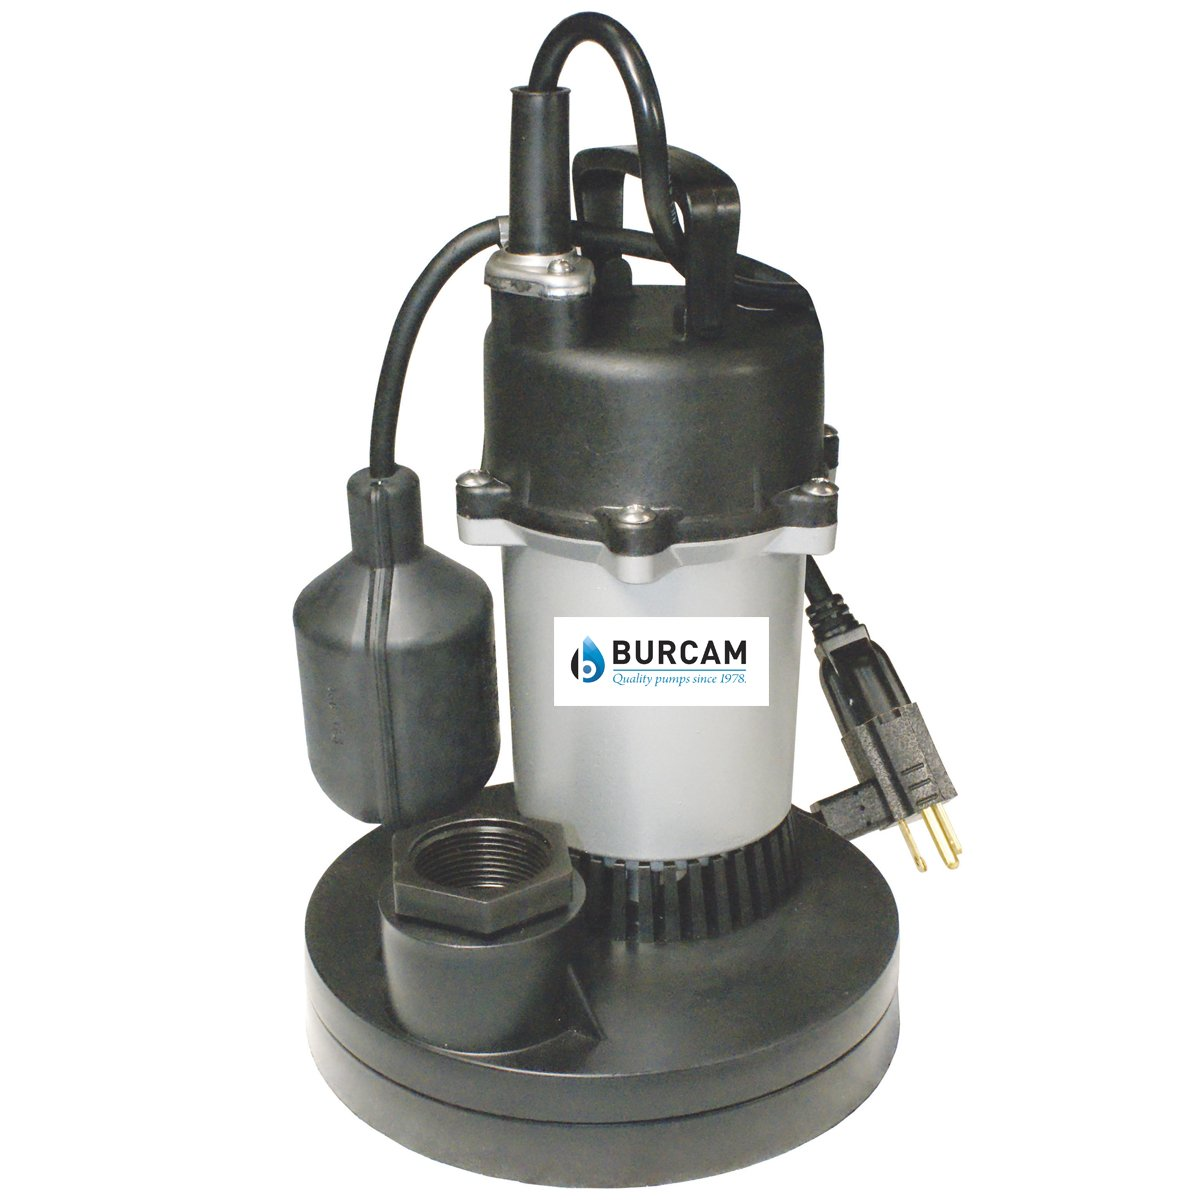 BURCAM 300700Z 1/2 HP Zinc Series Submersible Sump Pump 1-1/2'' Npt Silver by Bur-Cam